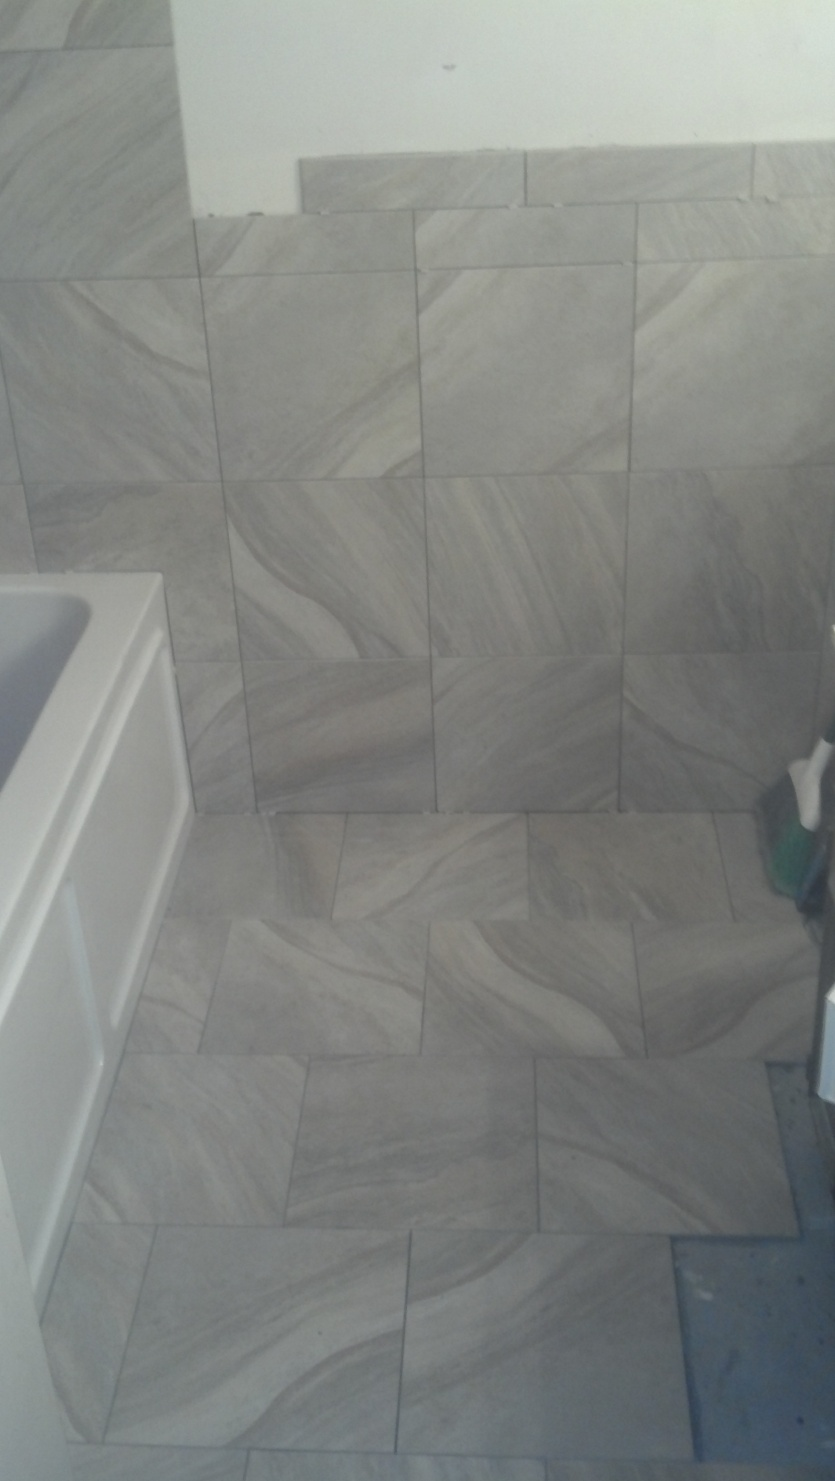 What tile project are you working on?-2012-03-31_16-13-07_690.jpg